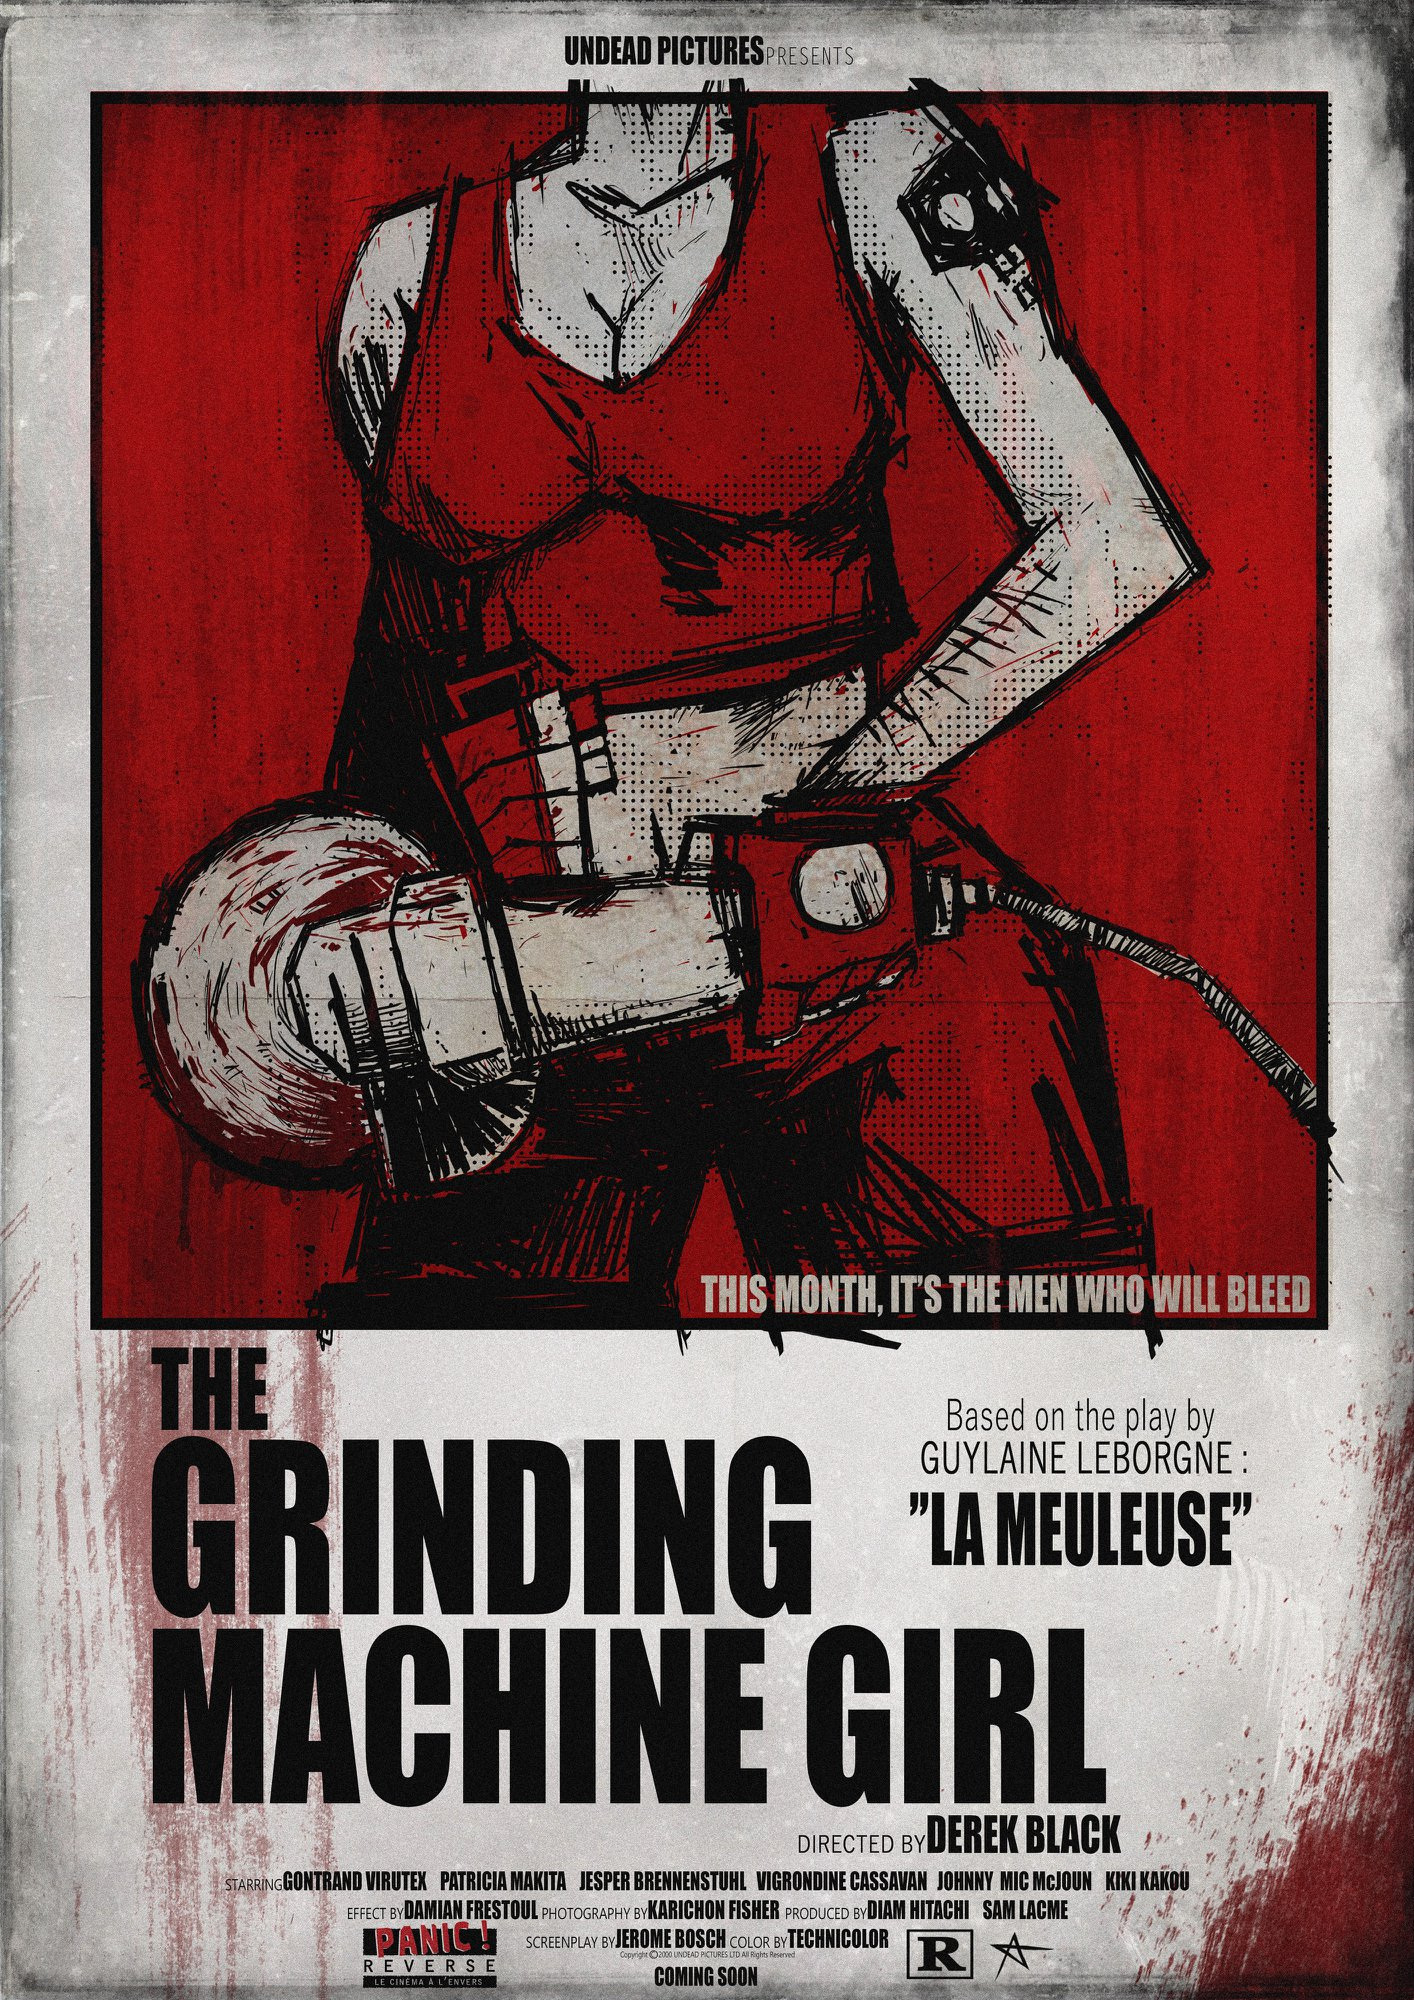 The Grinding Machine Girl - Brains